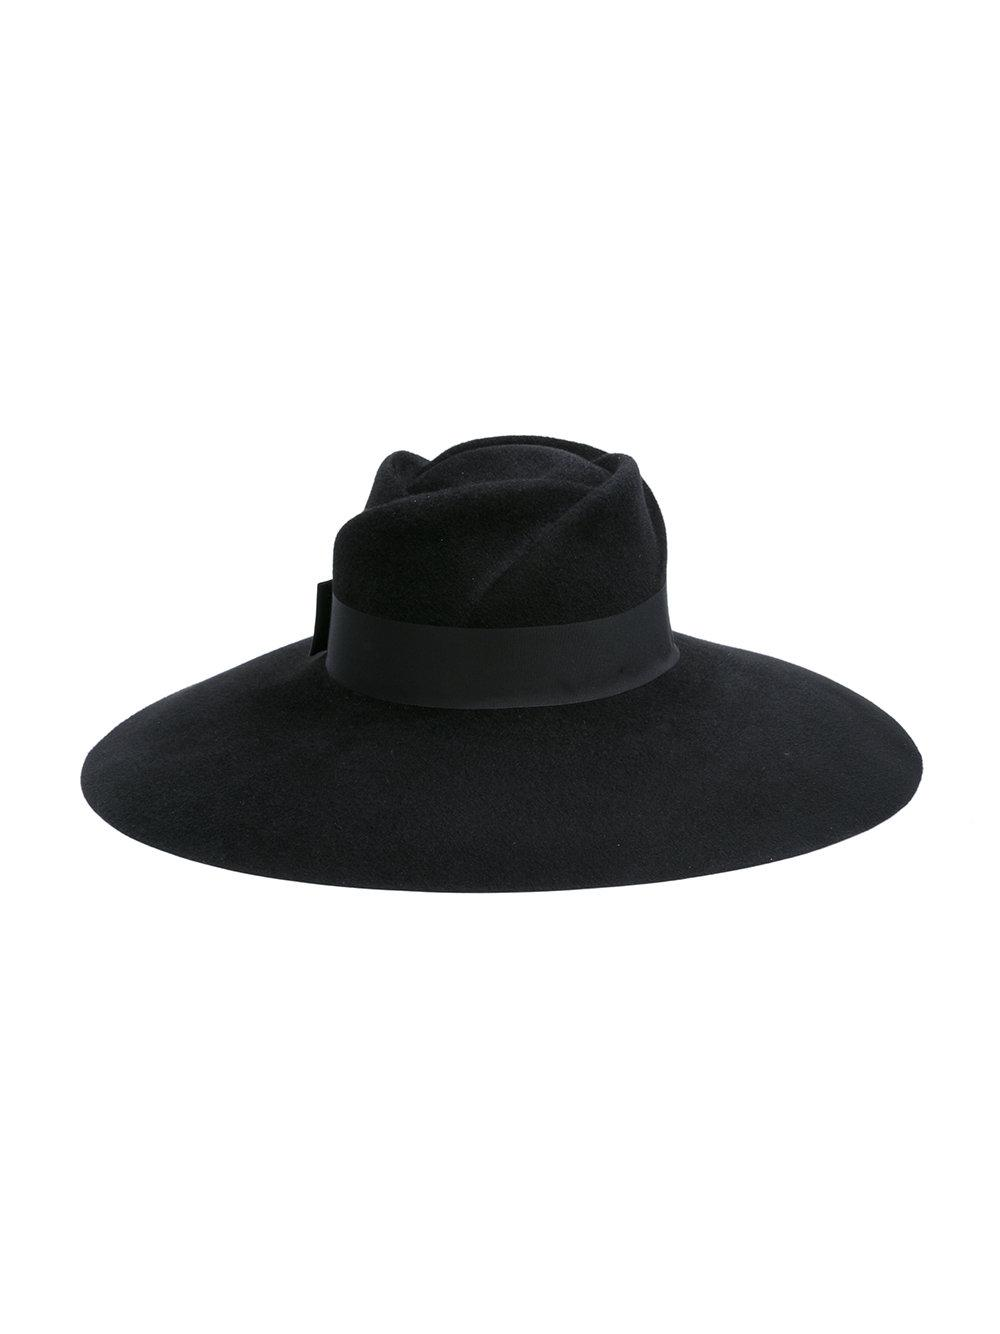 2b35444dd5f Gucci - Black Wide Brim Hat - Lyst. View fullscreen